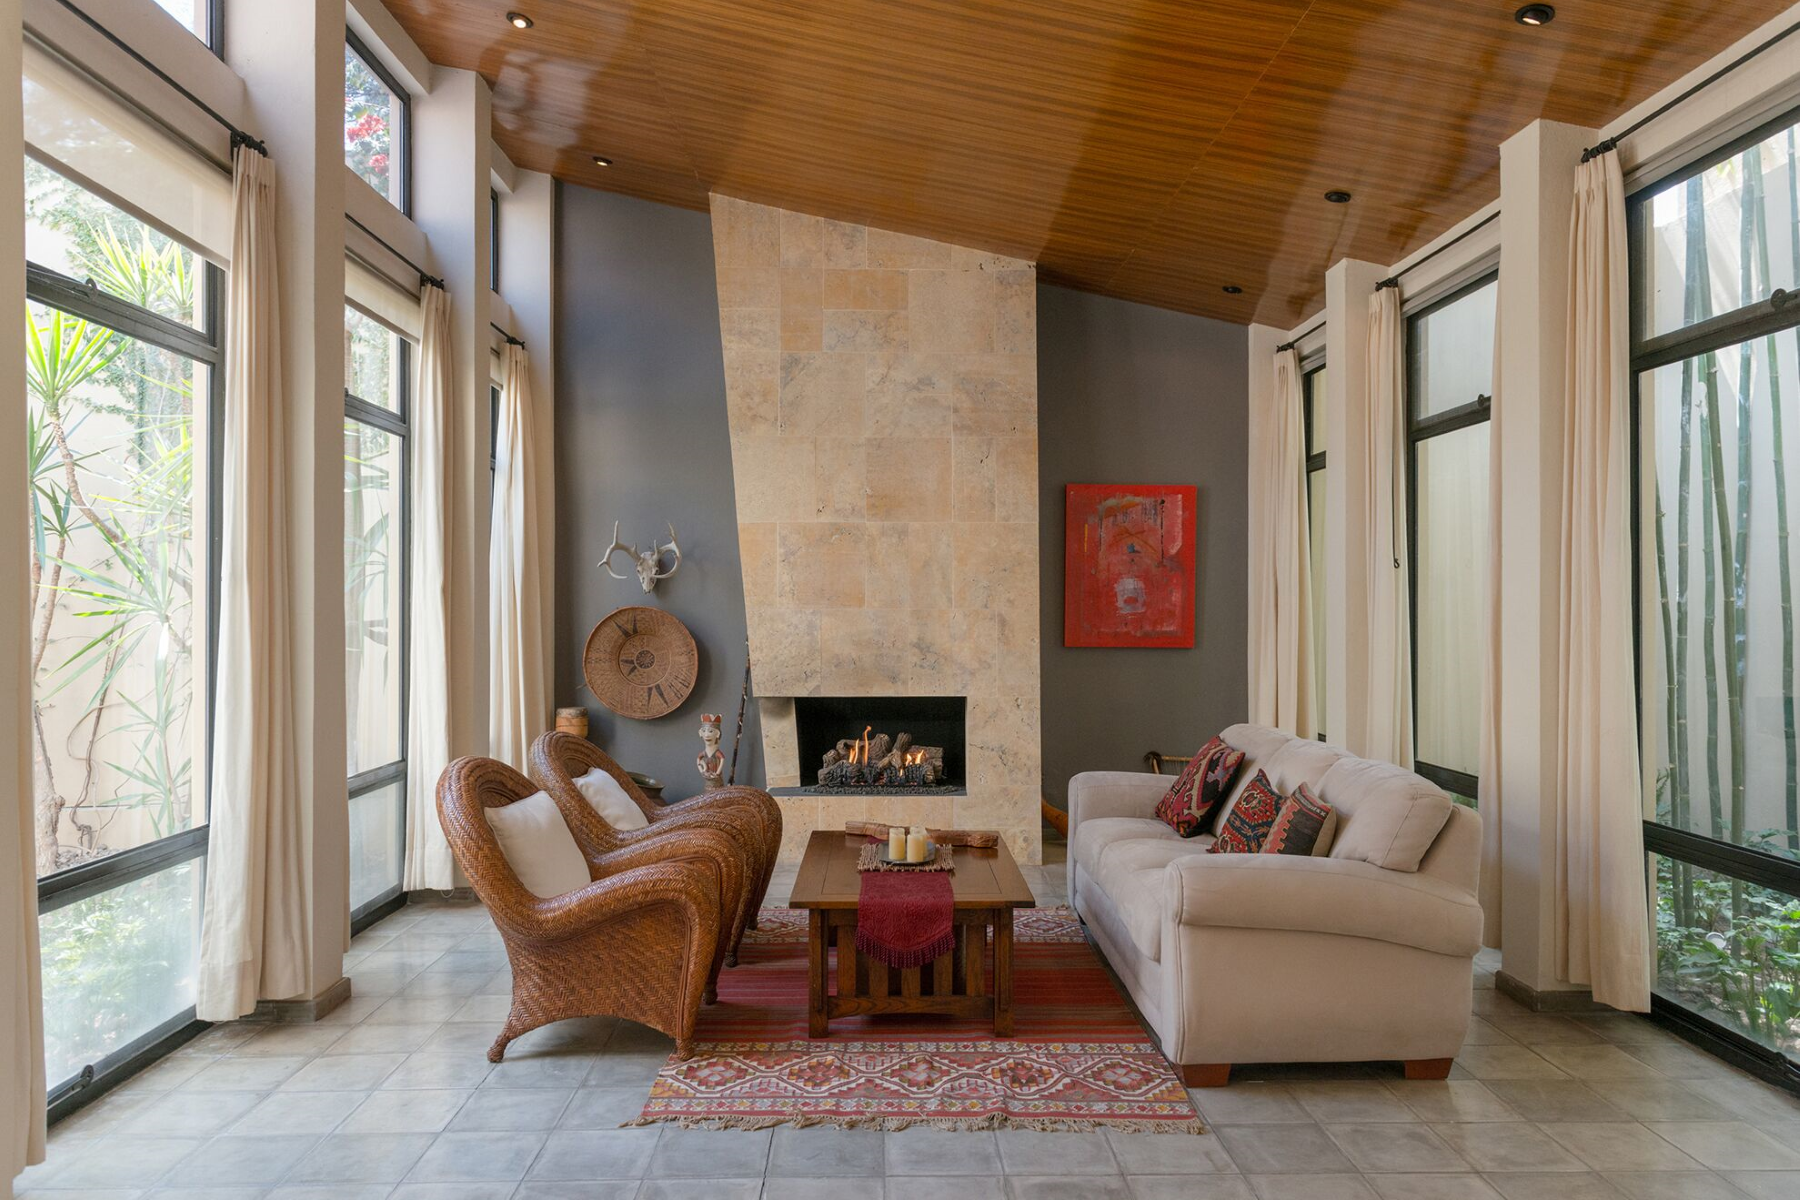 Single Family Homes for Sale at Casa de la Luz Calzada de la Luz 66 San Miguel De Allende, Guanajuato 37700 Mexico